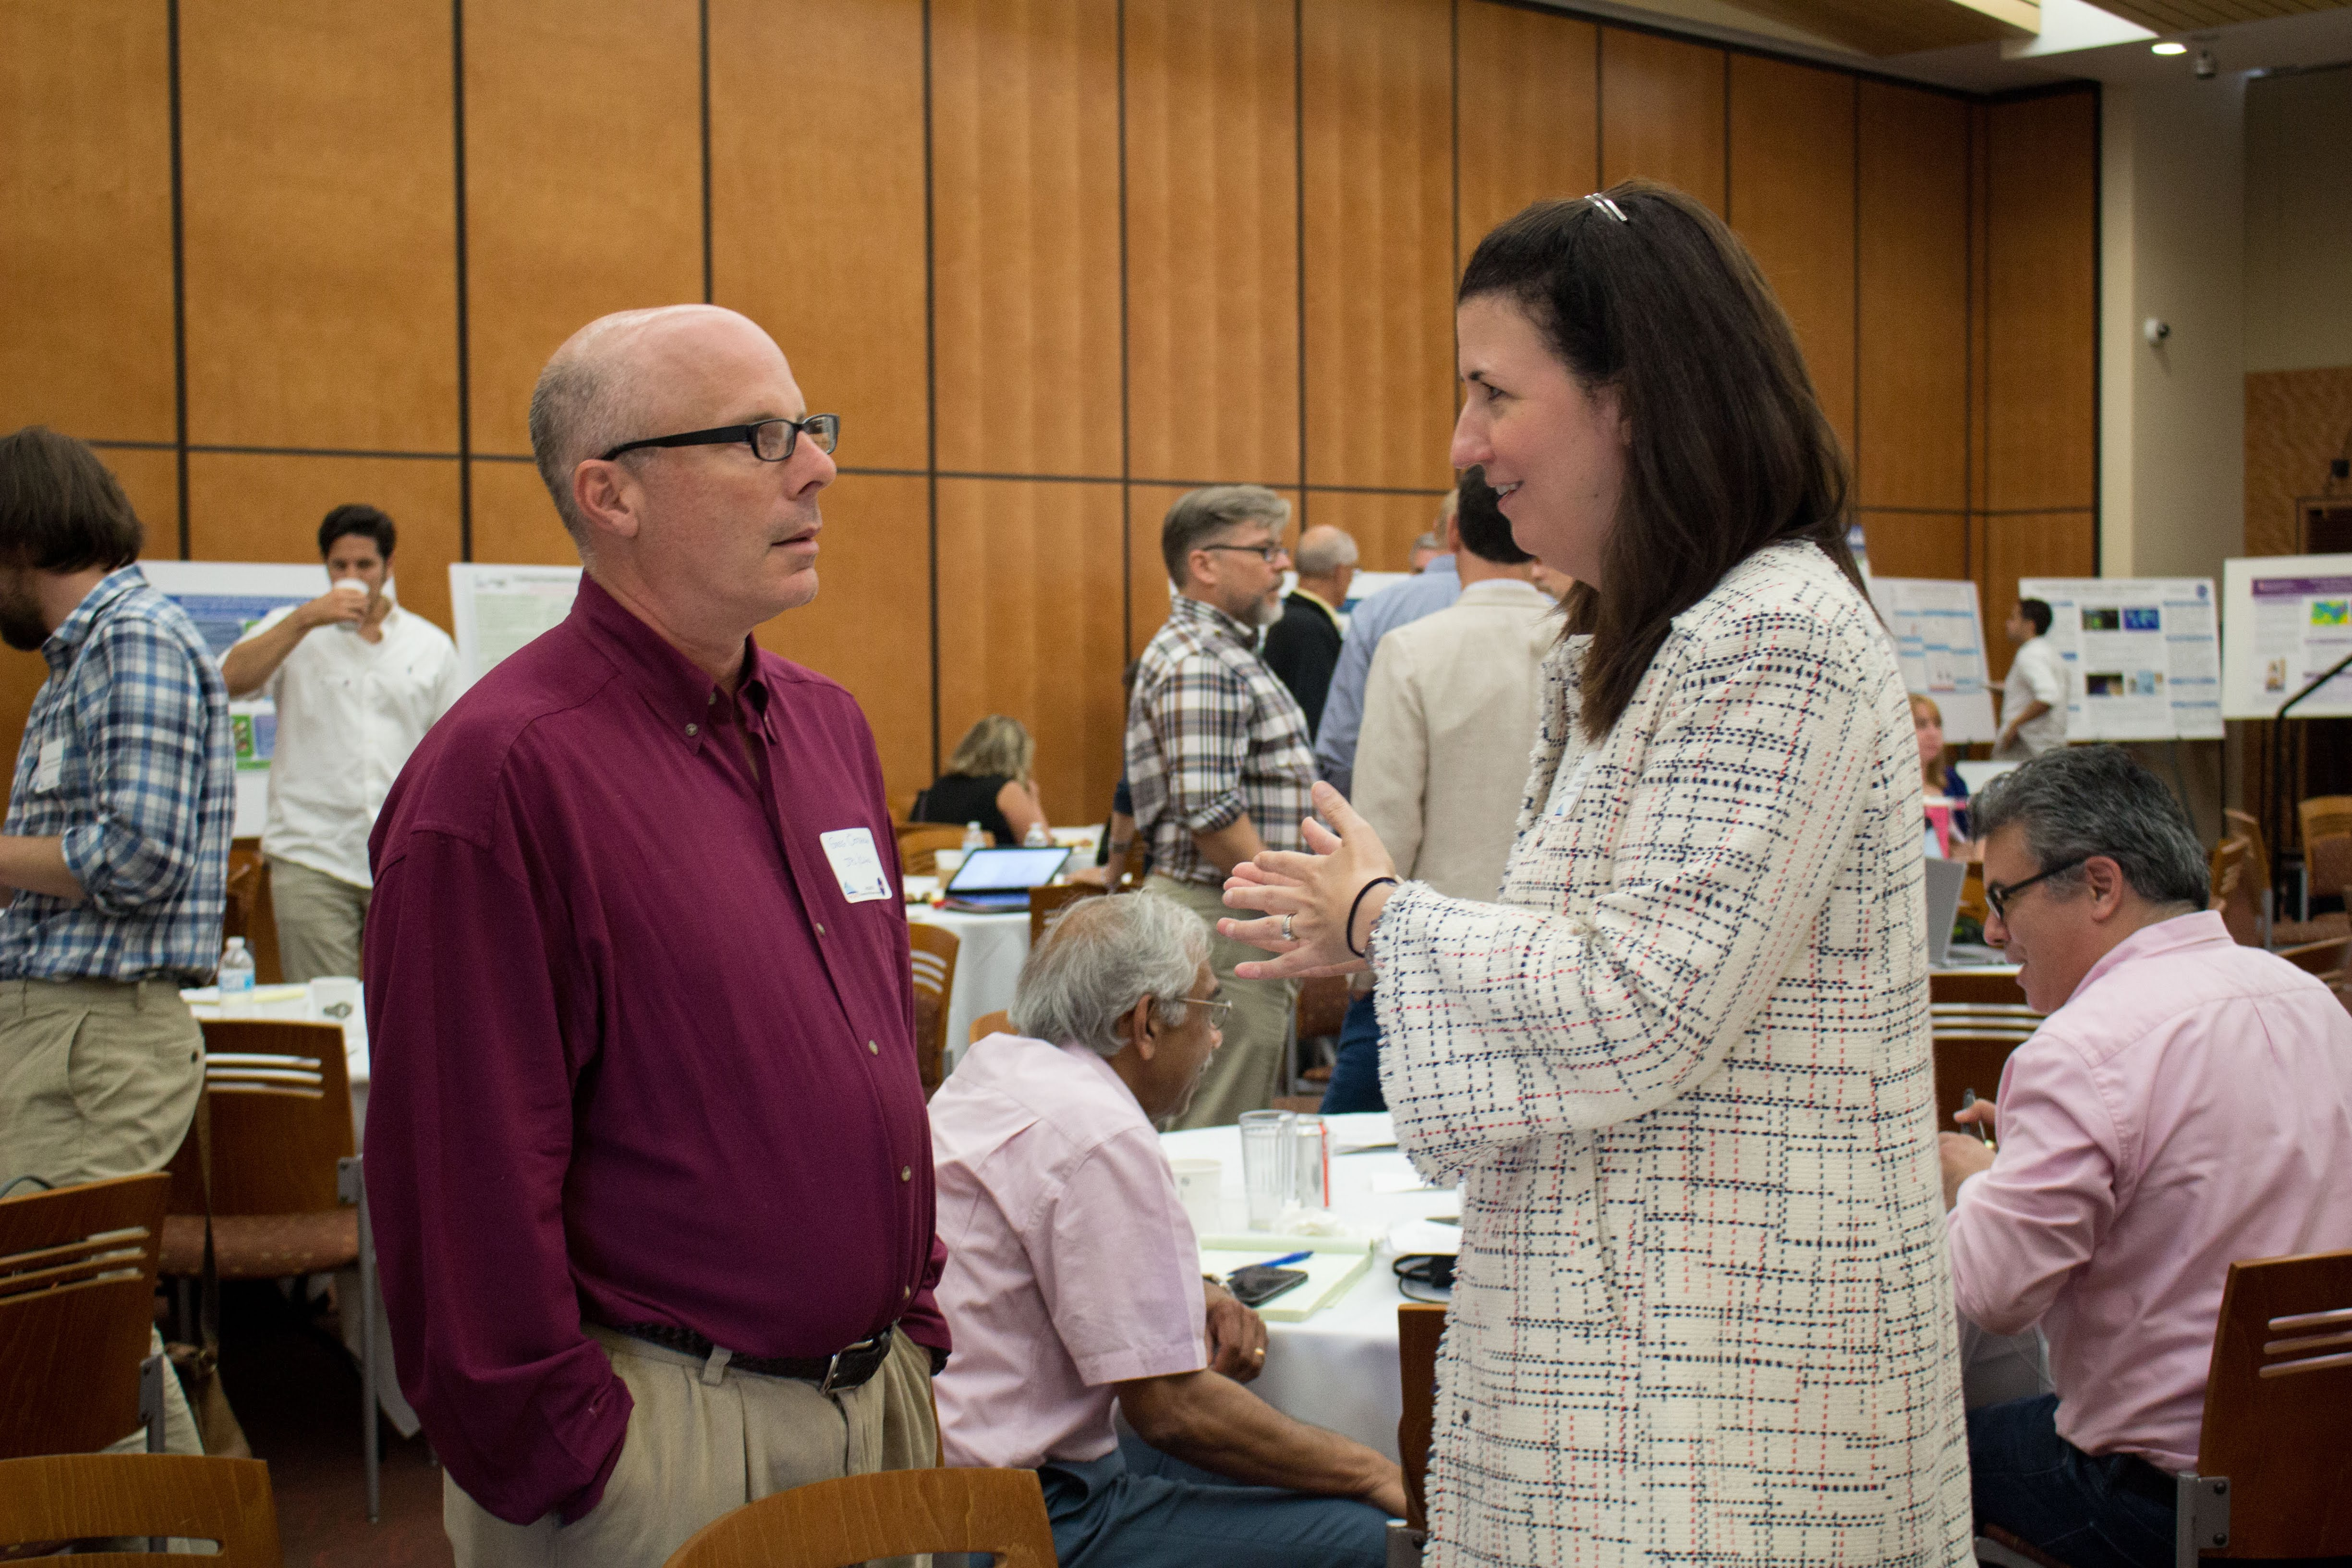 two people talking in a crowded room